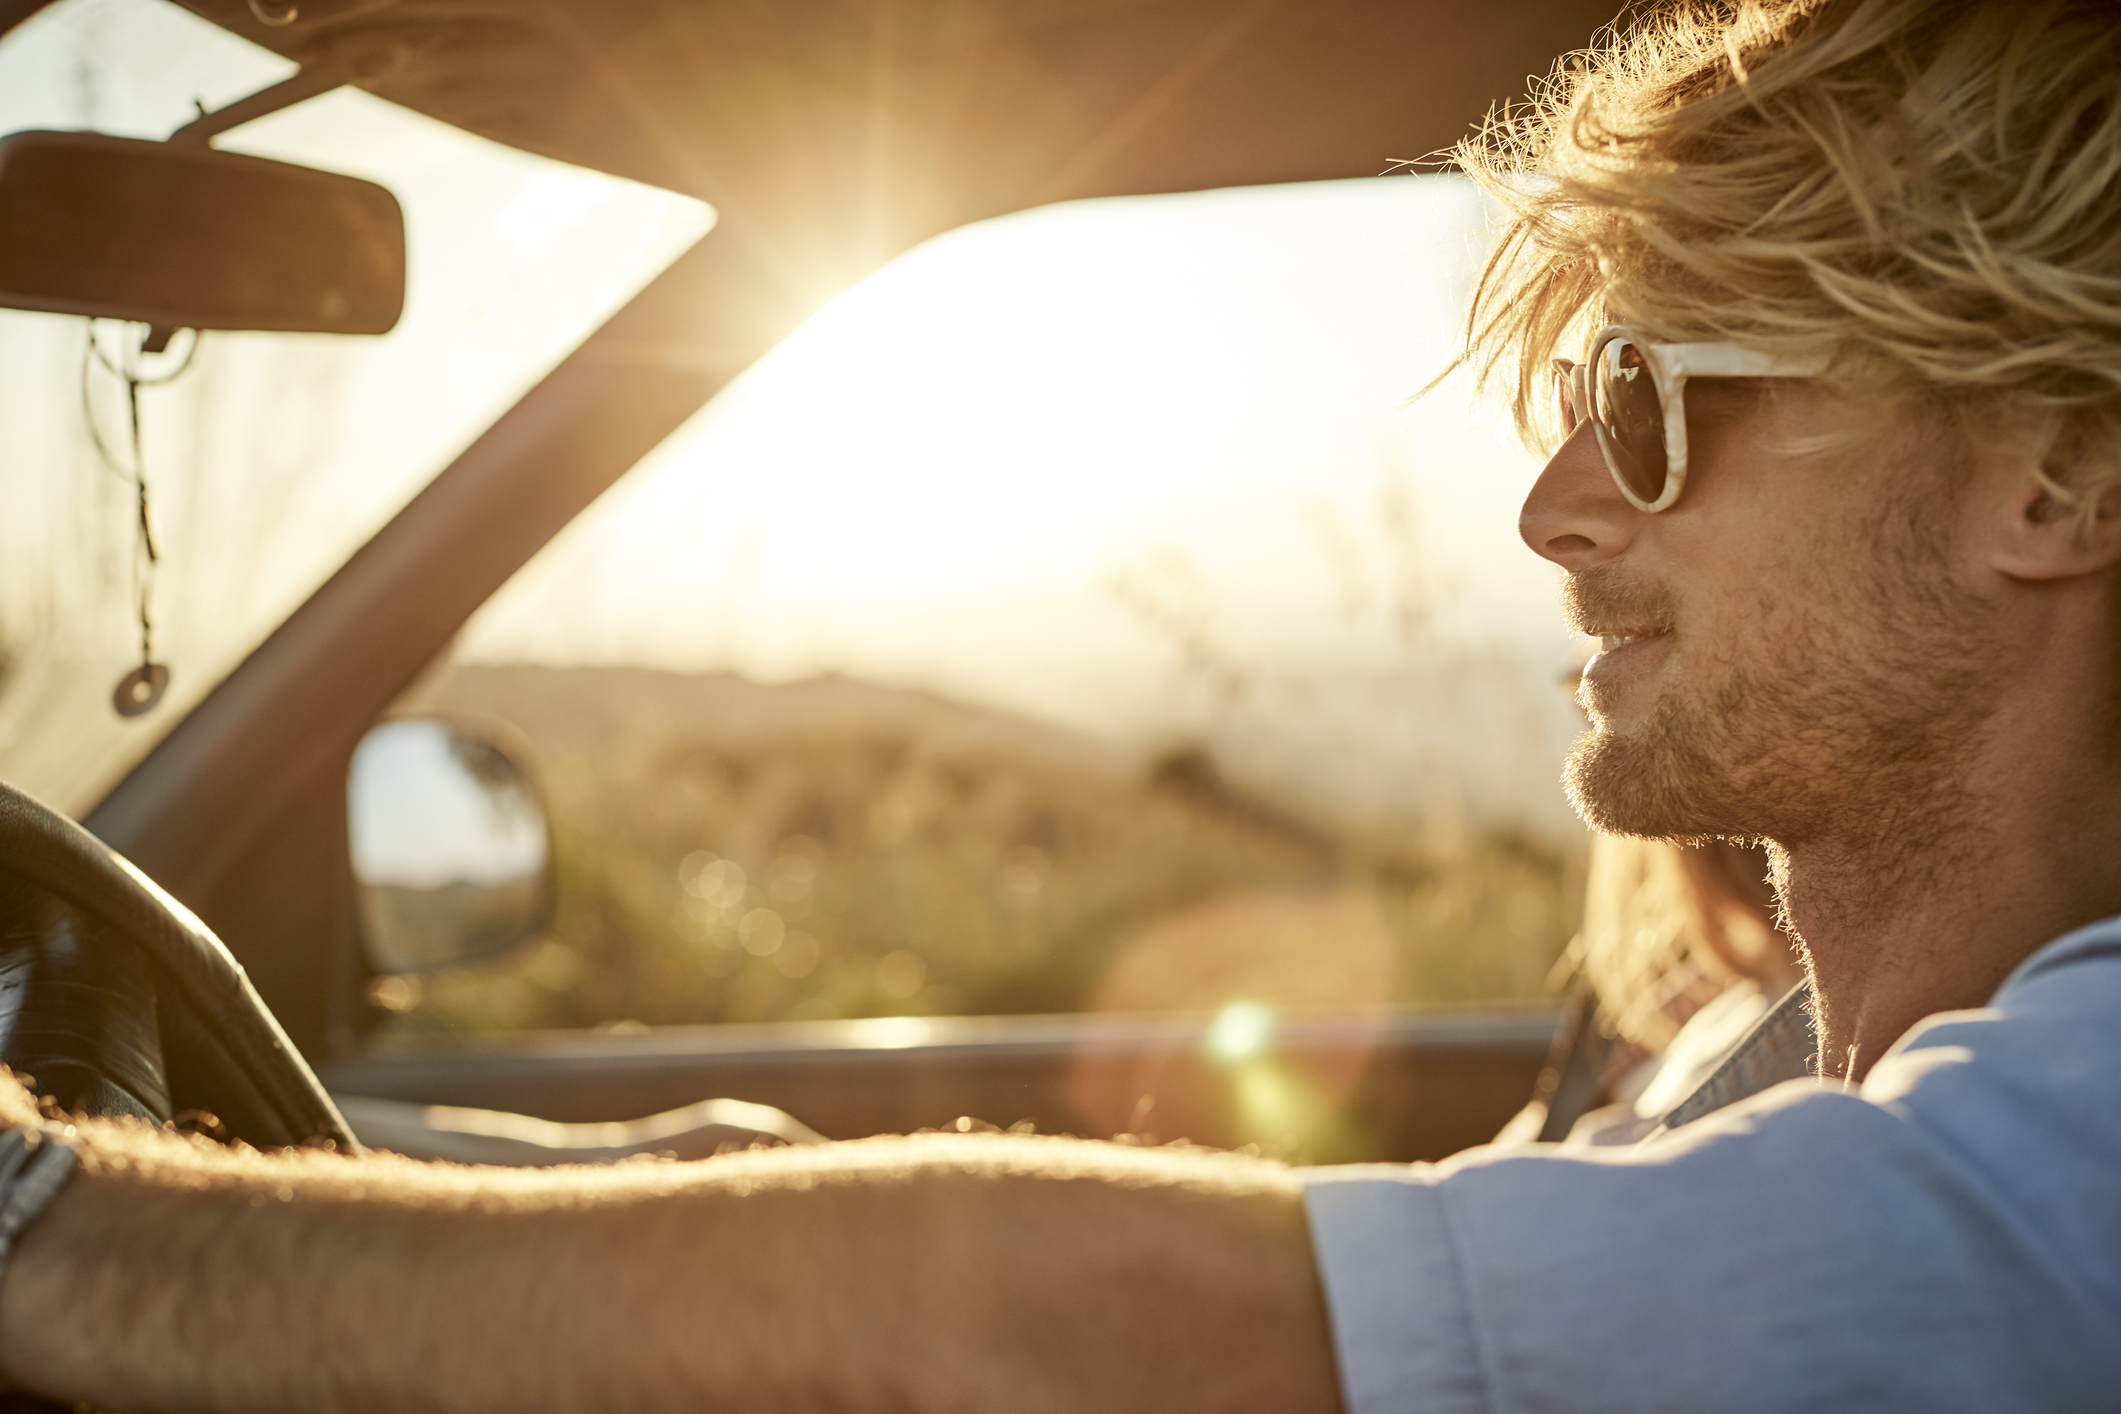 Blonde man driving into the sunlight appreciating his low-interest auto loan.